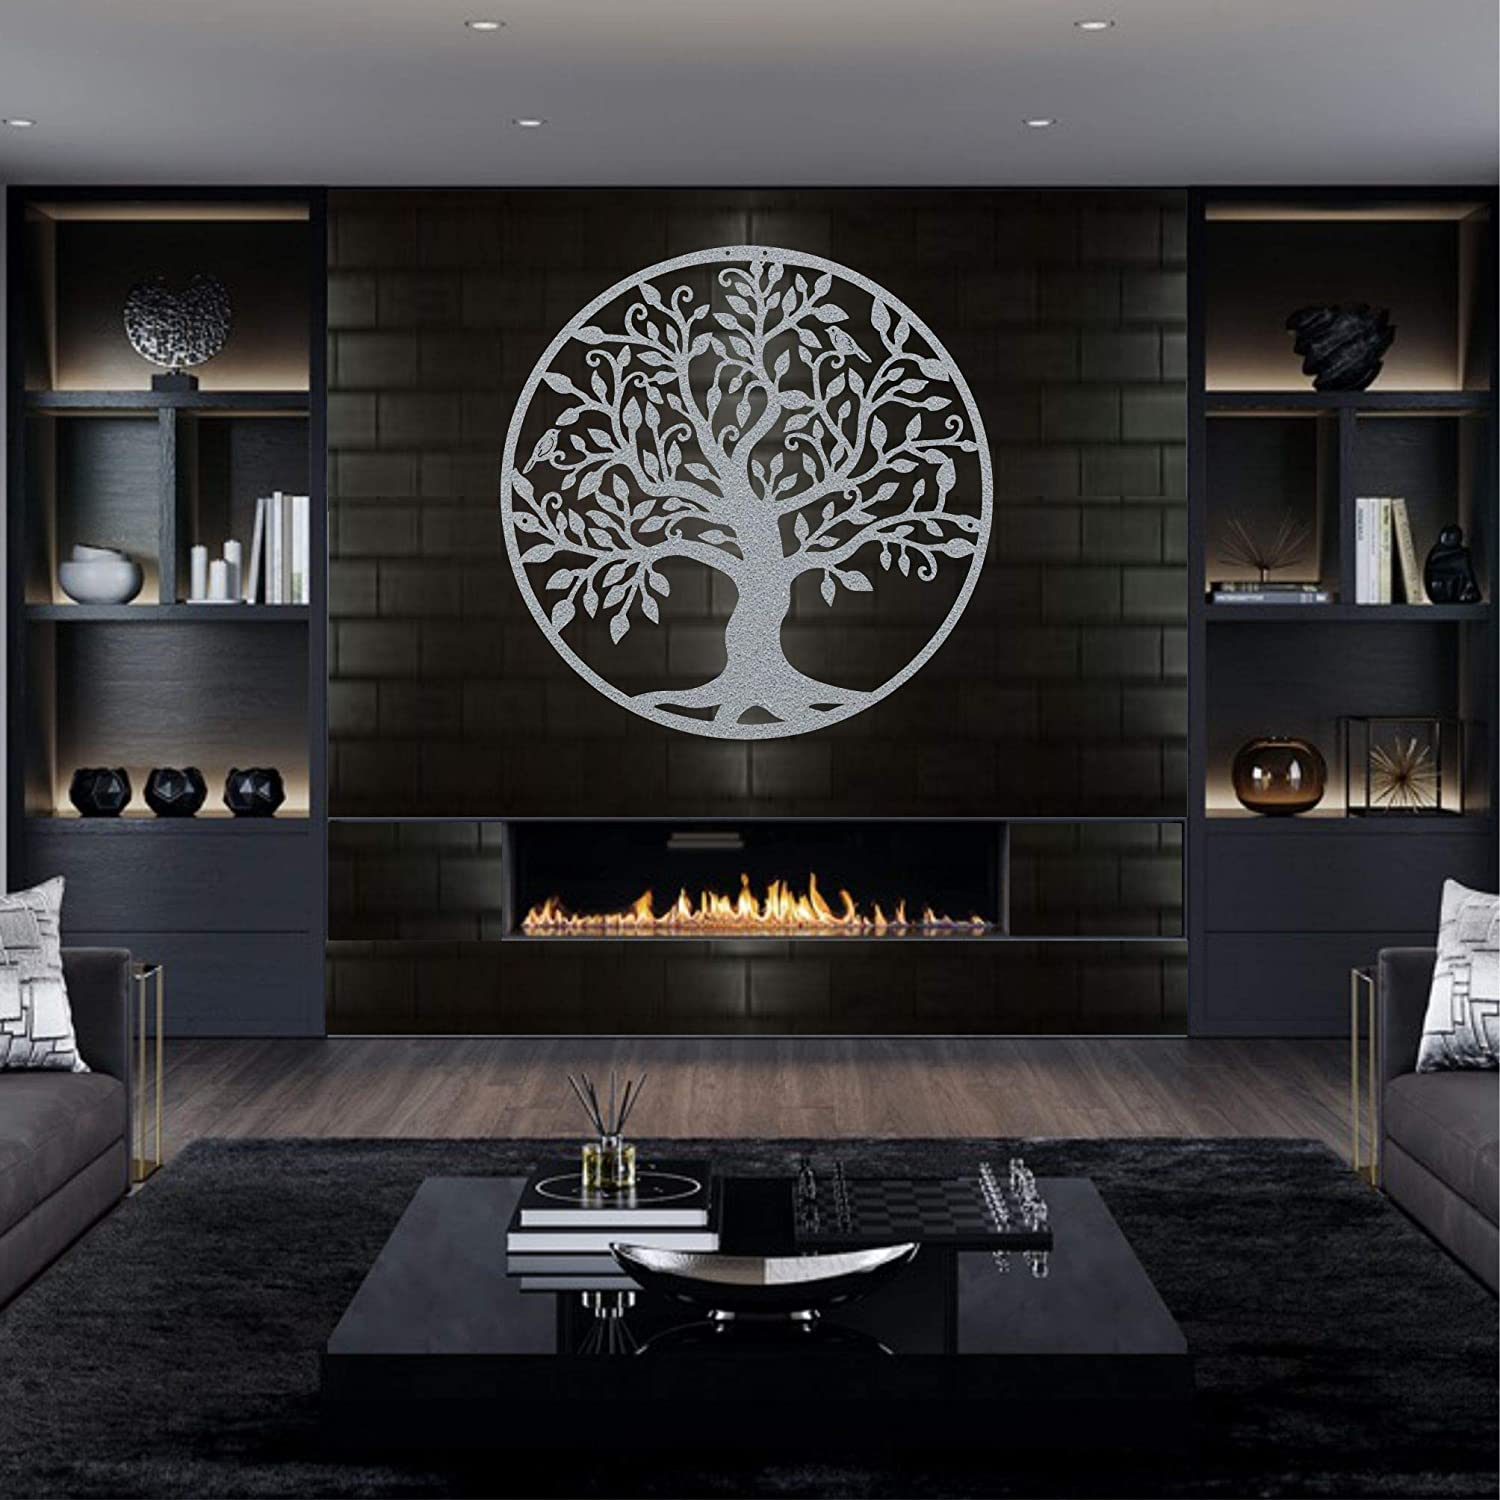 """Metal Wall Art - Silver Grey Tree of Life - Metal Family Tree - Metal Wall Silhouette, Metal Wall Decor, Home Office Decoration Bedroom Living Room Decor (27"""" W x 28"""" H / 68x71 cm)"""